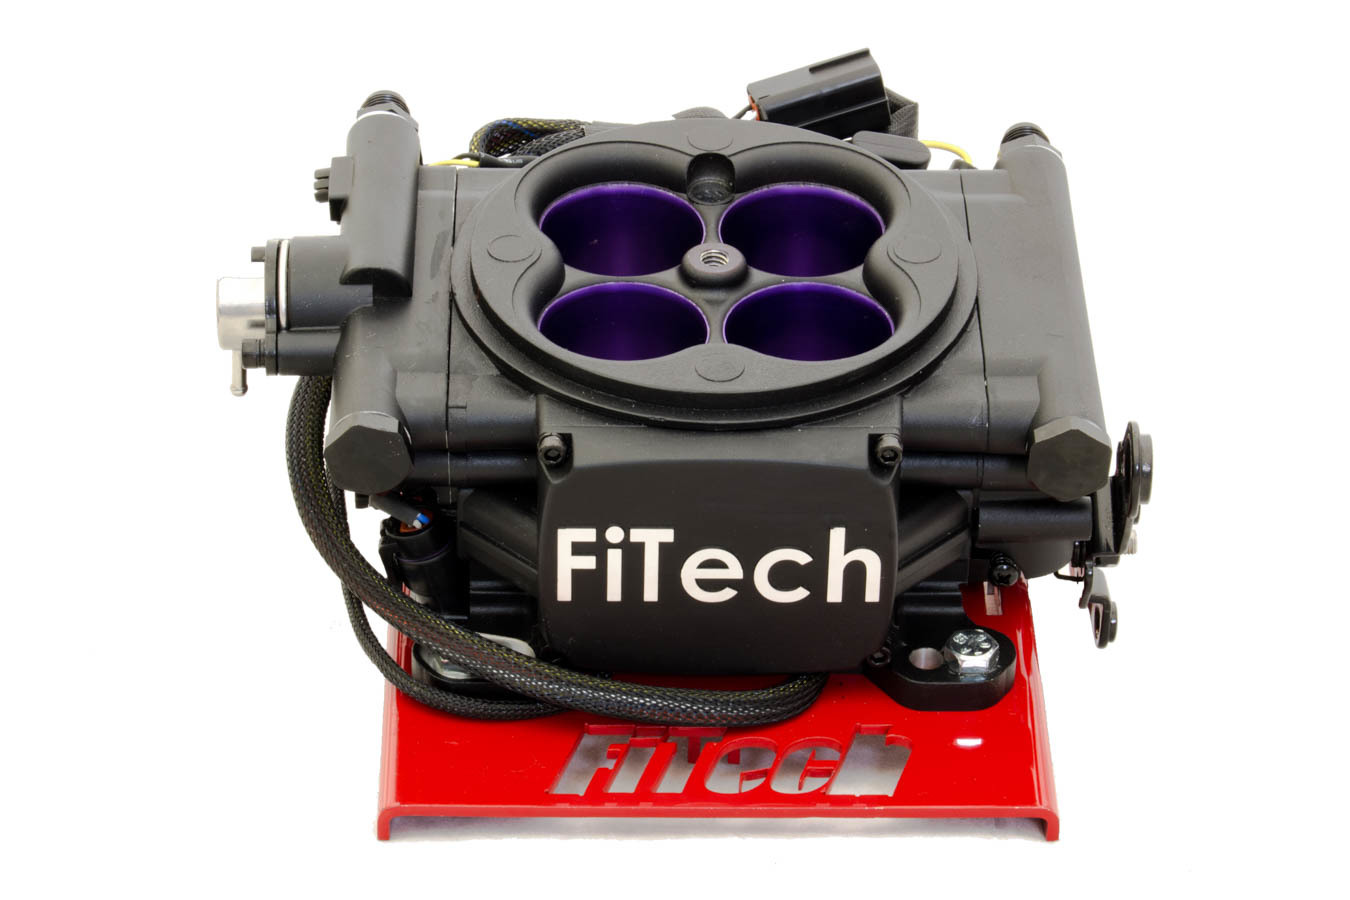 Fitech Fuel Injection 30008 Fuel Injection, MeanStreet, Throttle Body, Square Bore, 55 lb/hr Injectors, Aluminum, Black Anodize, Universal, Kit